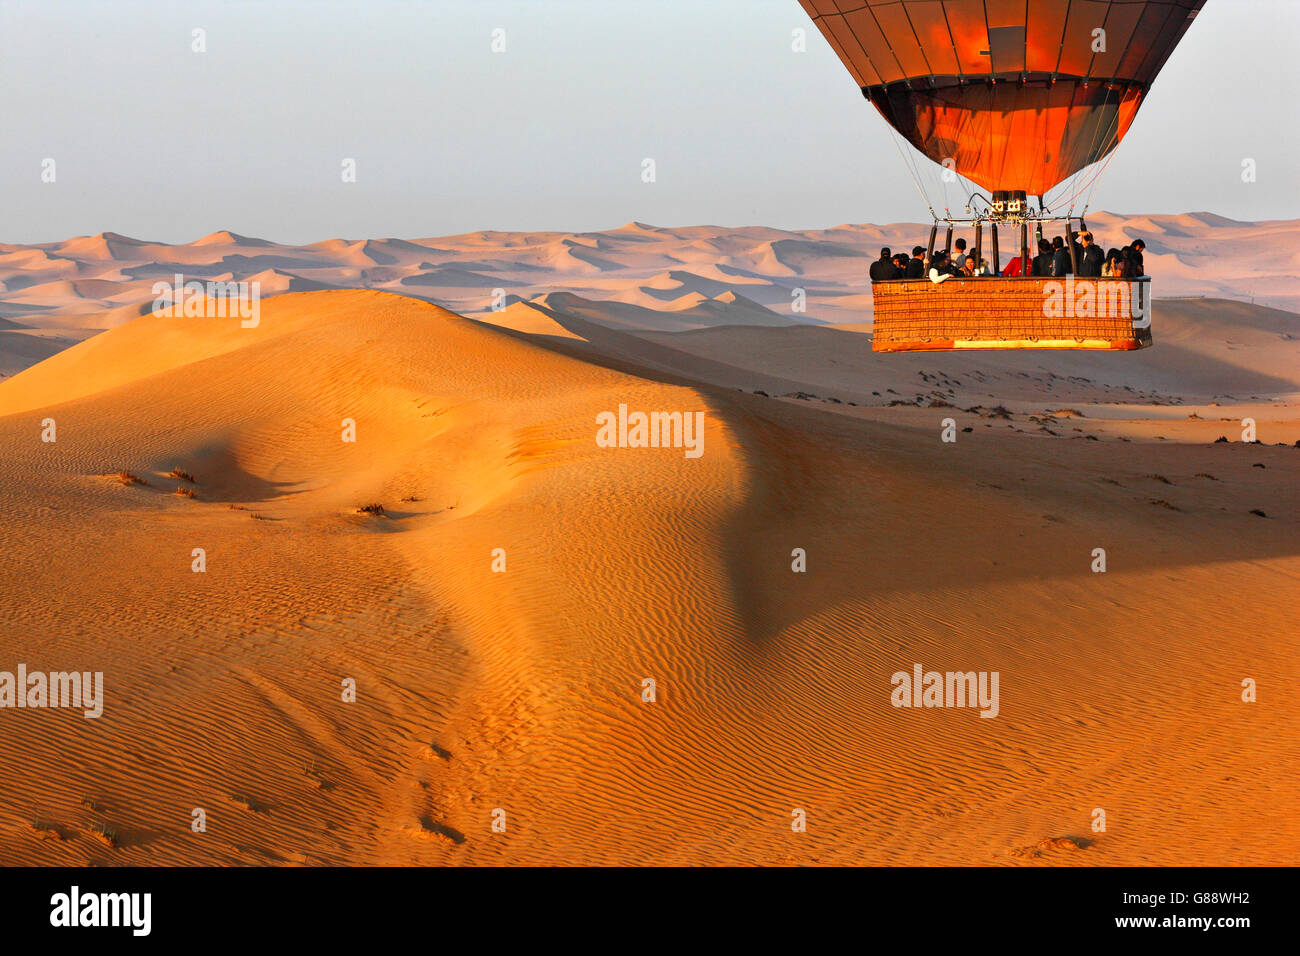 Flying over desert in hot air balloon, Dubai - Stock Image